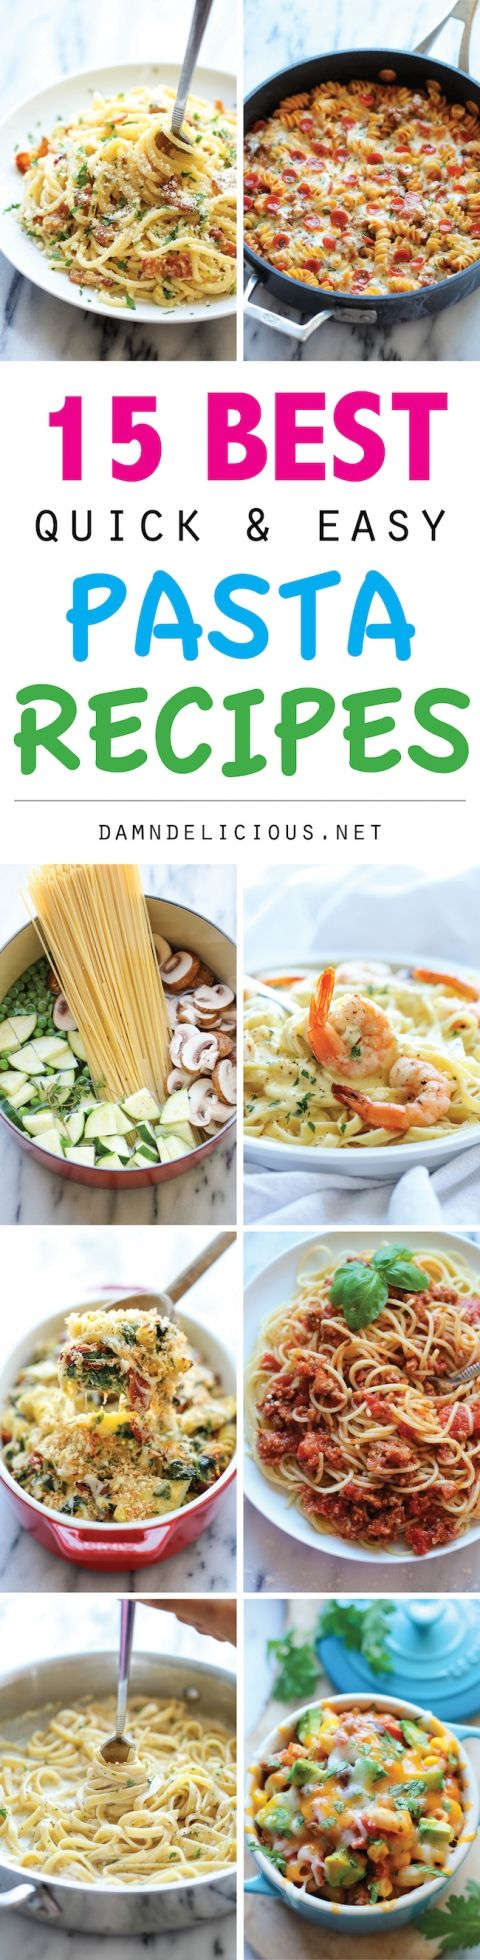 15 Best Quick and Easy Pasta Recipes - From one pot meals to 15 min dishes and slow cooker recipes, these are the easiest pasta dishes ever!